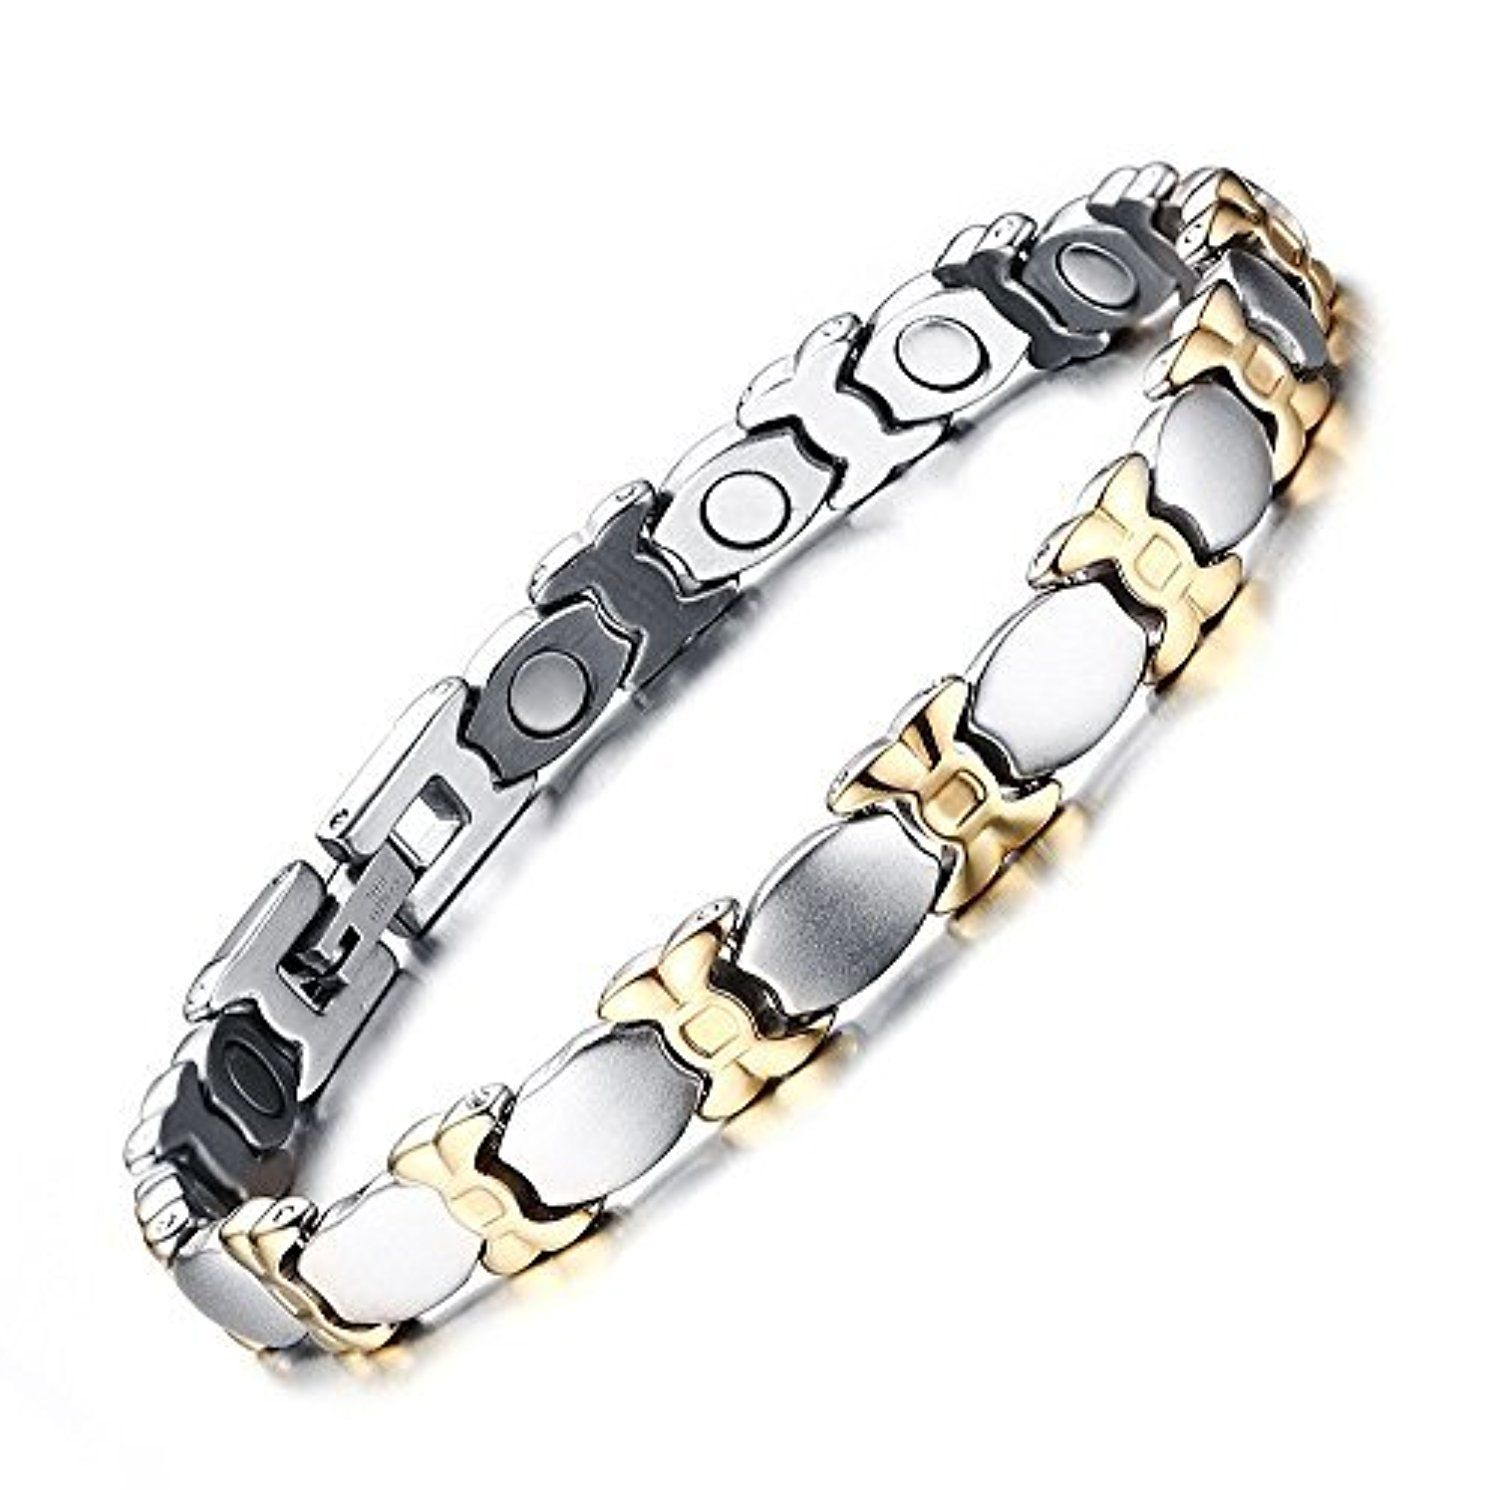 Titanium Stainless Steel Bracelet for Women's with Magnets-Pain Relief for Arthritis and Carpal Tunnel by Chang World -- Awesome products selected by Anna Churchill